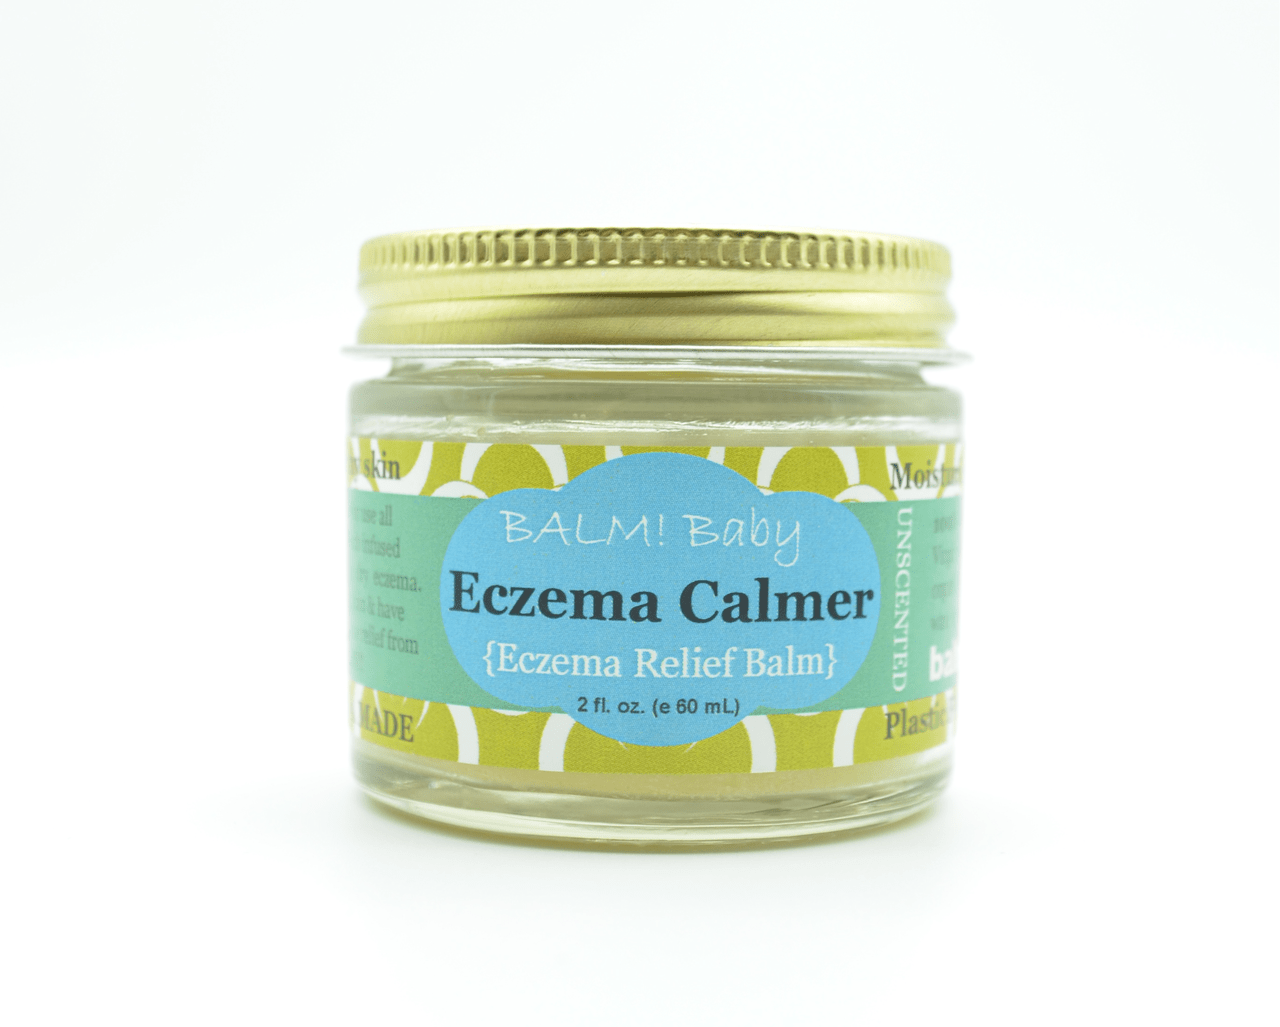 Balm! Baby Ezcema Calmer 2 oz Body Butter - Unscented